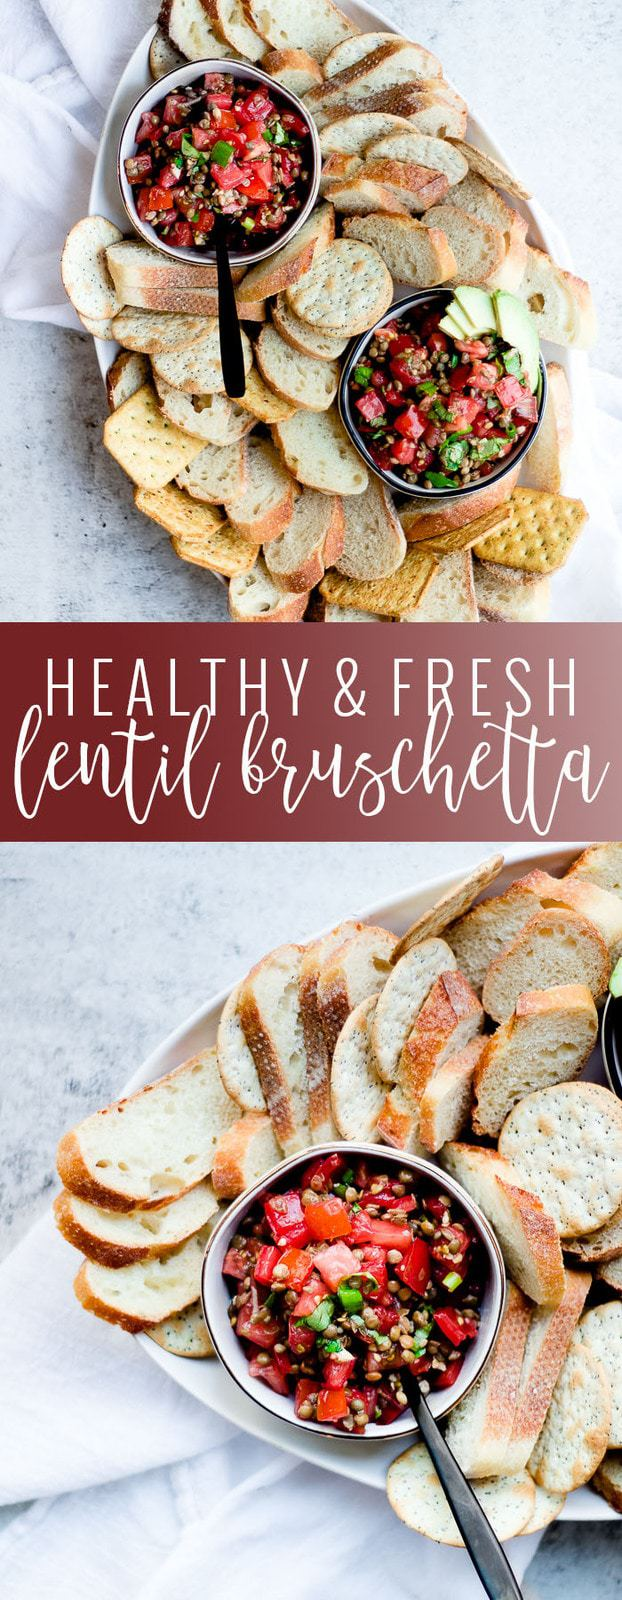 Lentil Bruschetta Recipe pinterest image